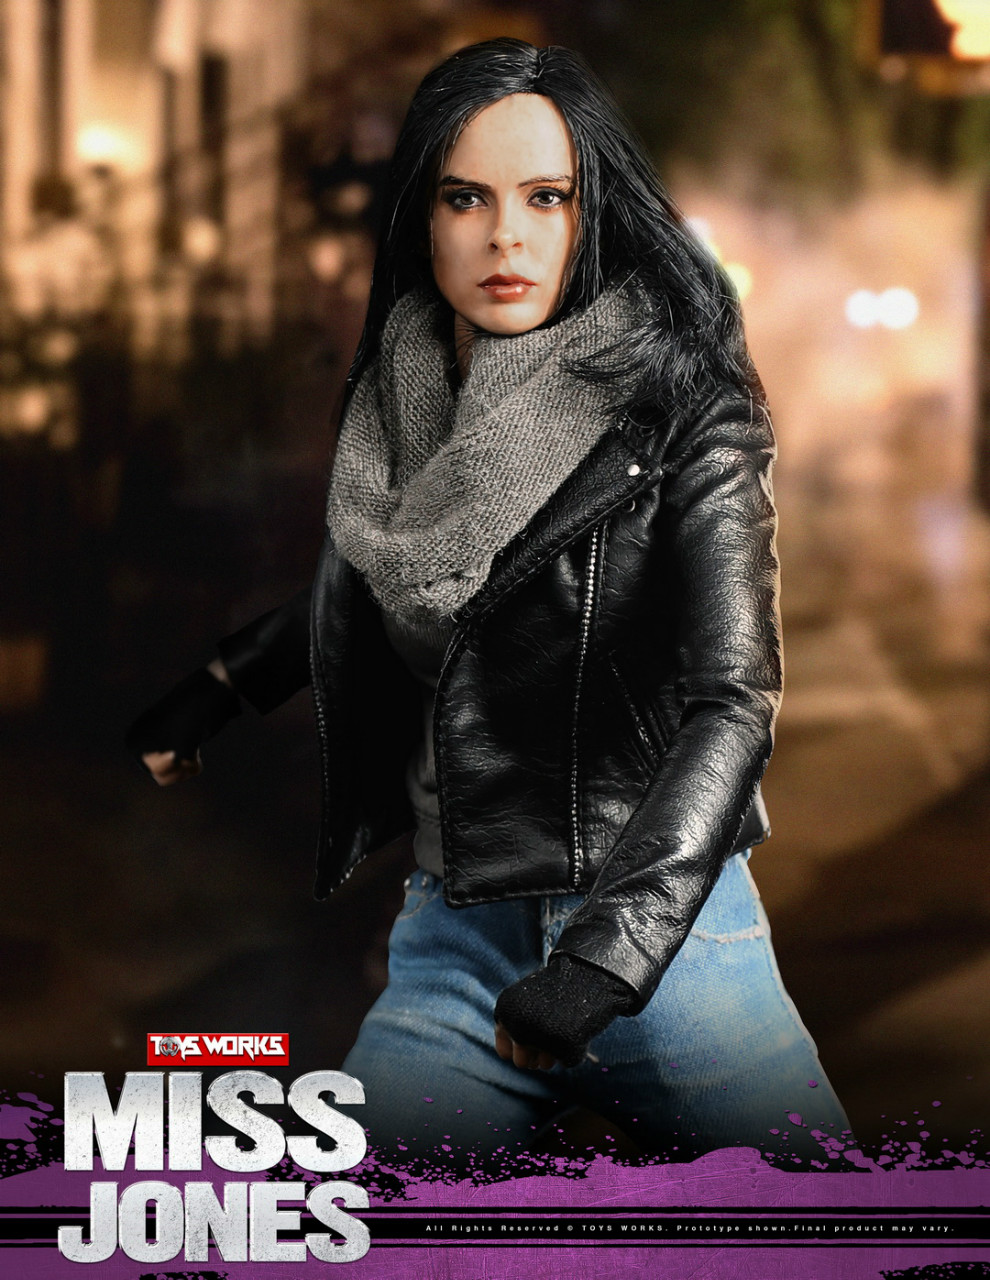 NEW PRODUCT: TOYS WORKS New: 1/6 Miss Jones Miss Jones can move TW007 19163610